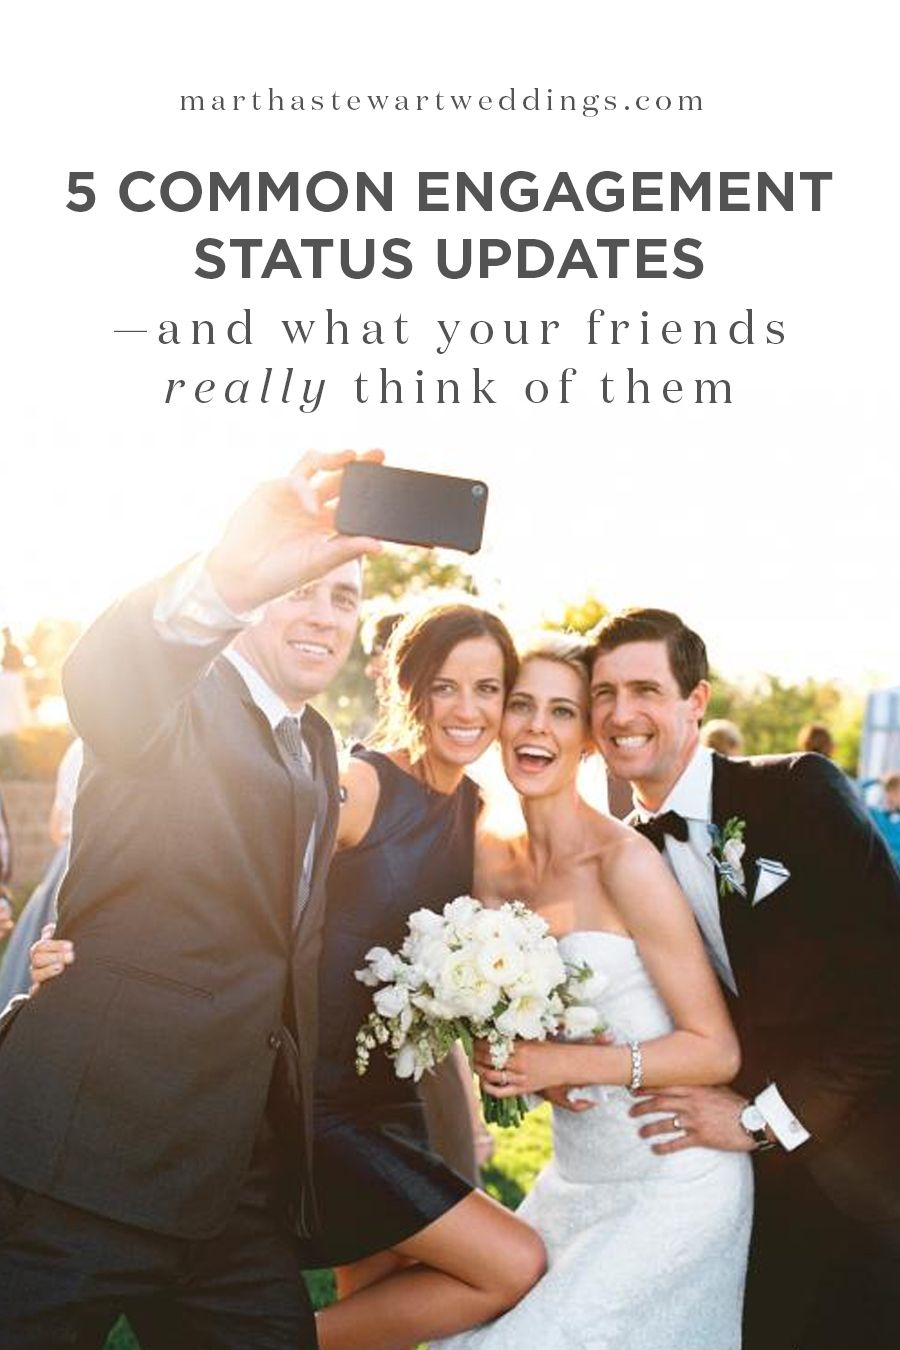 Romantic Wedding Day Quotes That Will Make You Feel The